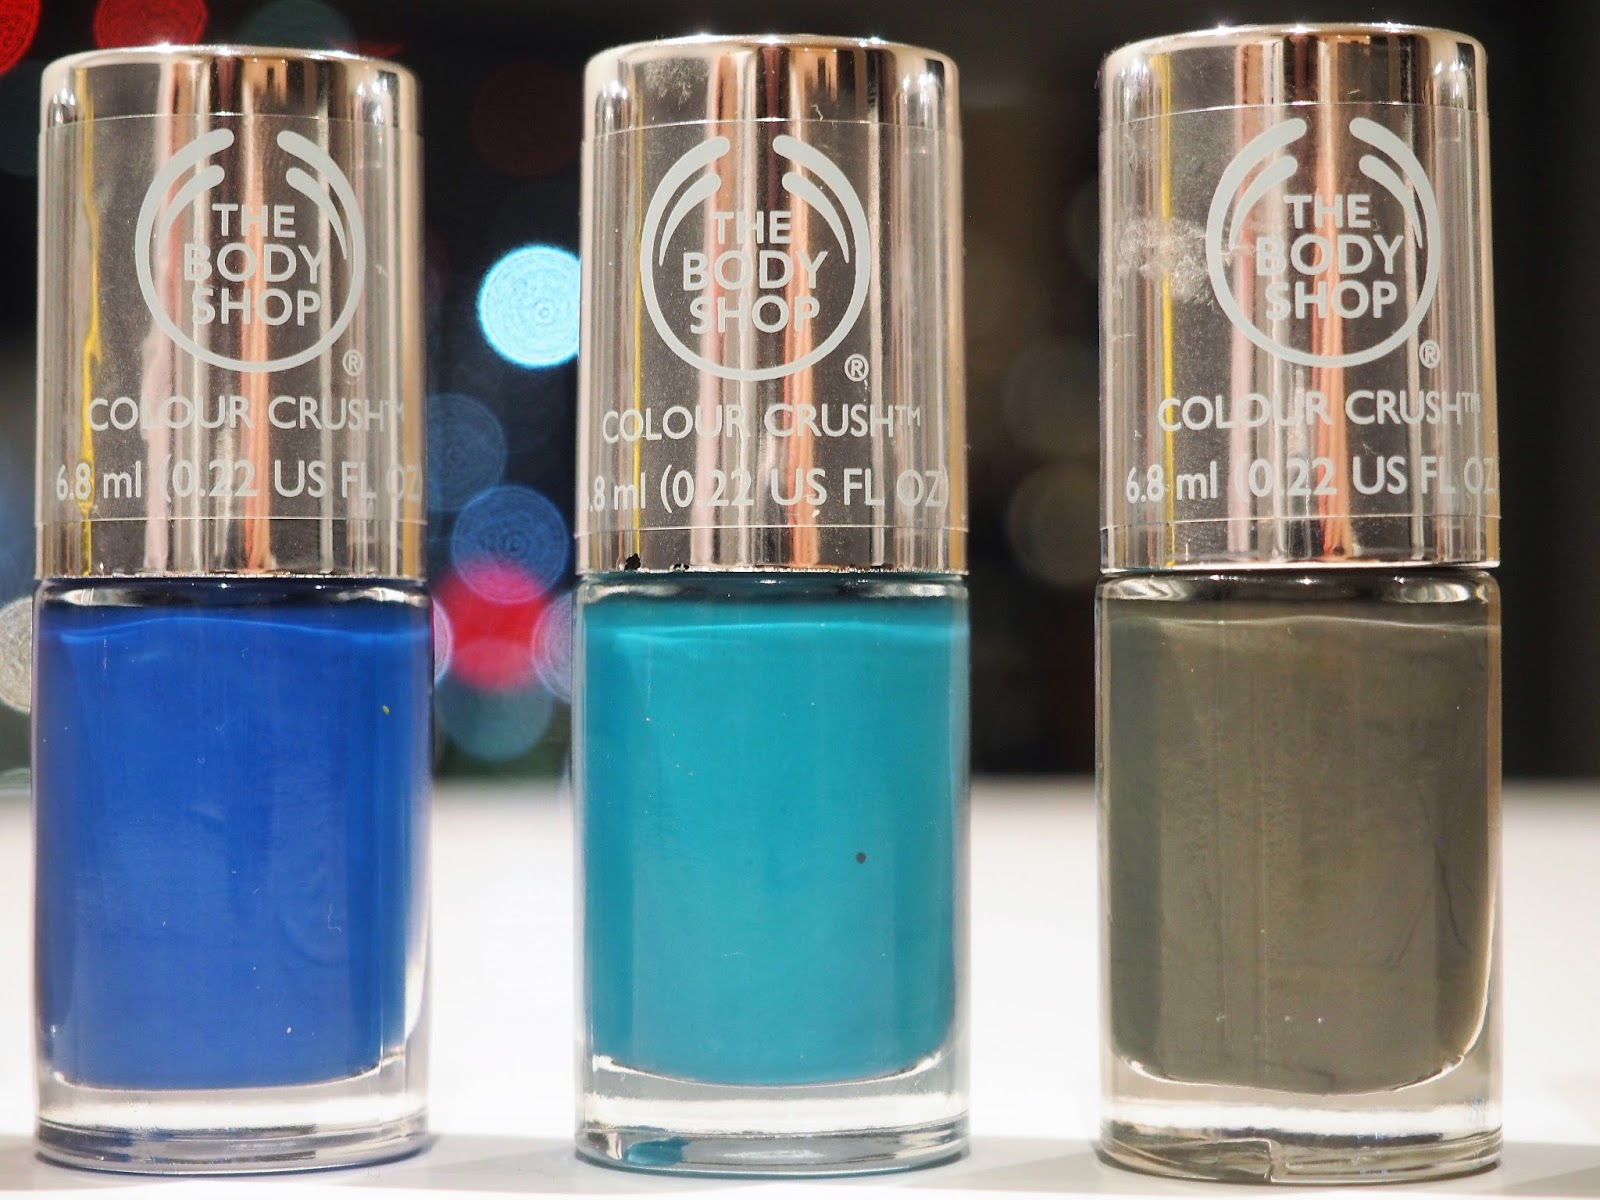 The Body Shop Colour Crush nail polishes - Winter Trend